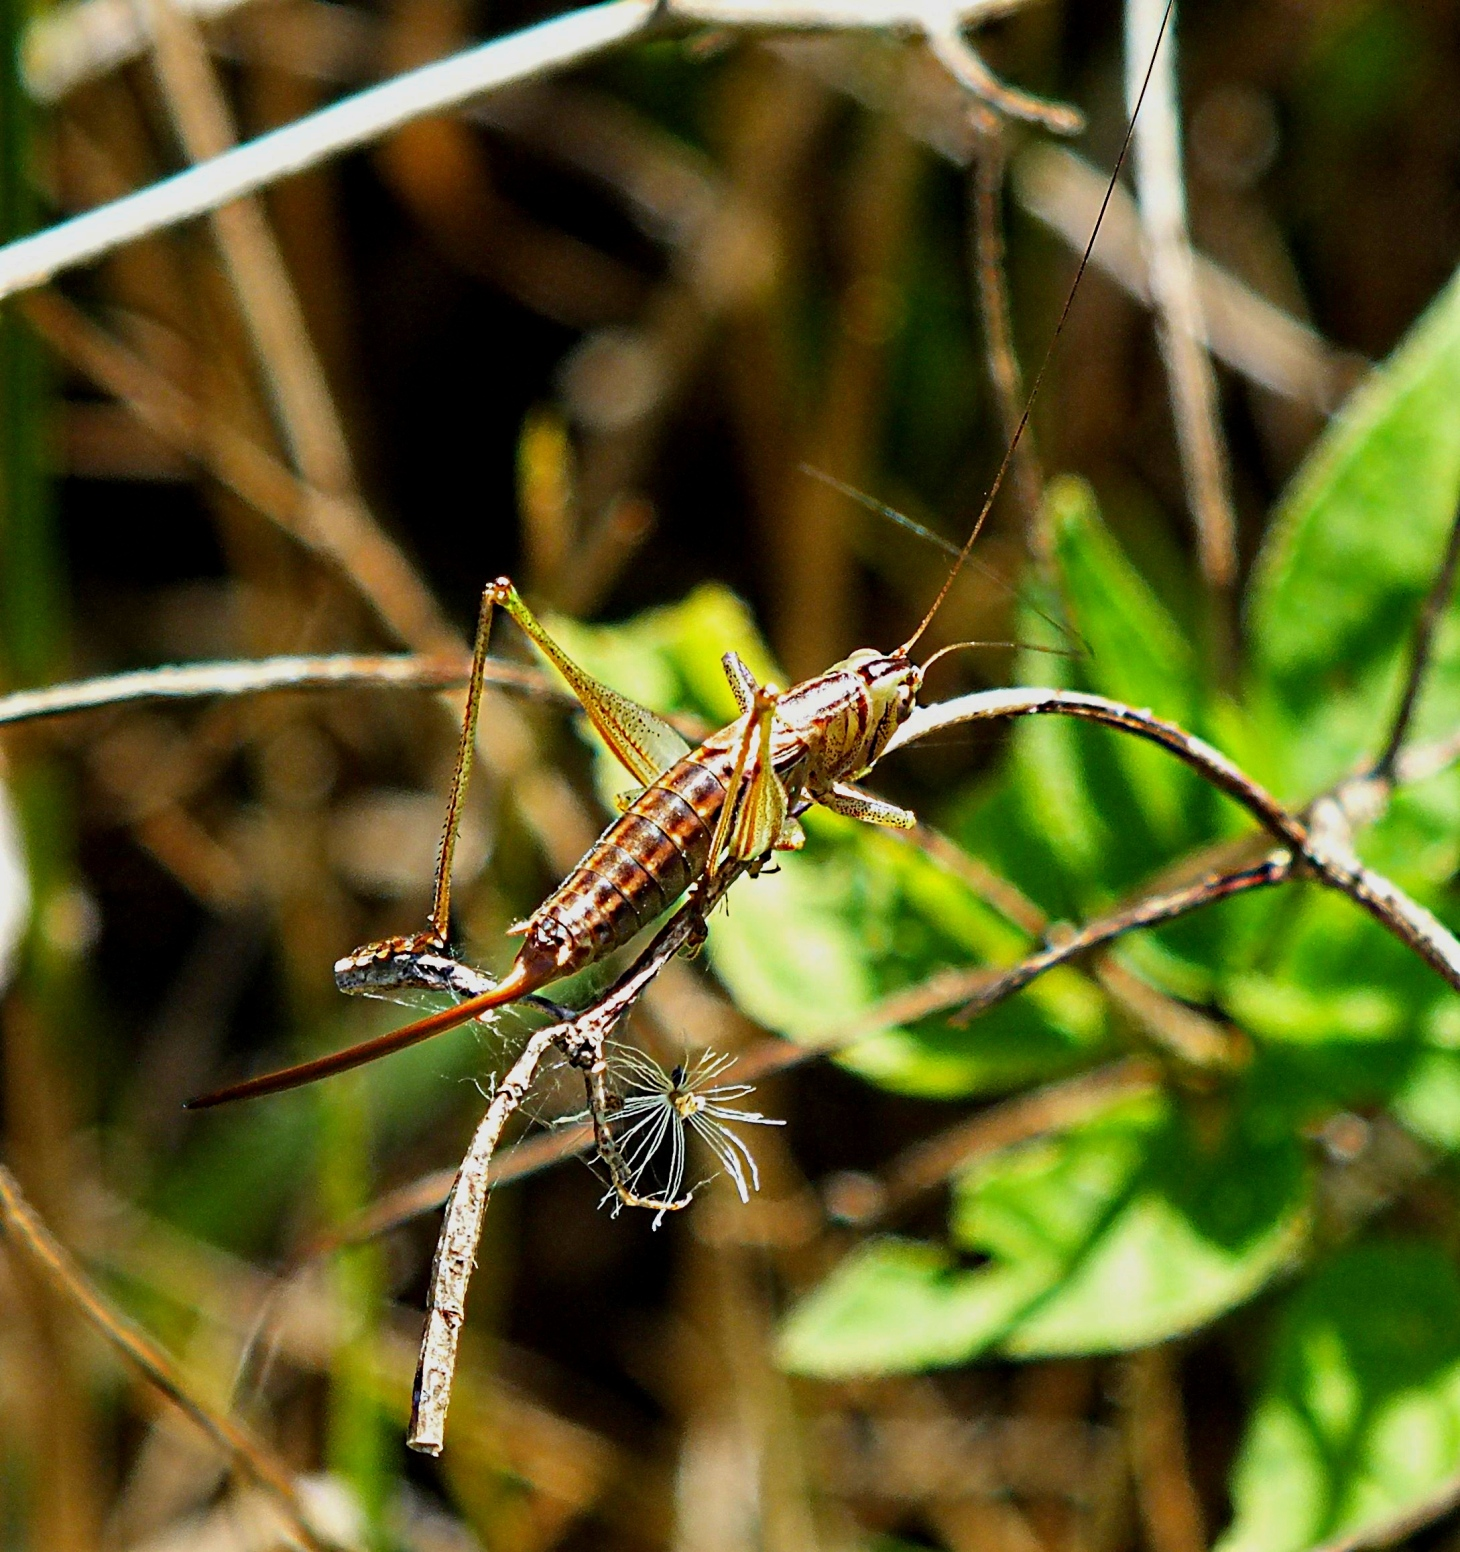 A Katydid whipping her fishing fly-rod.  Photo by Thomas Peace 2014